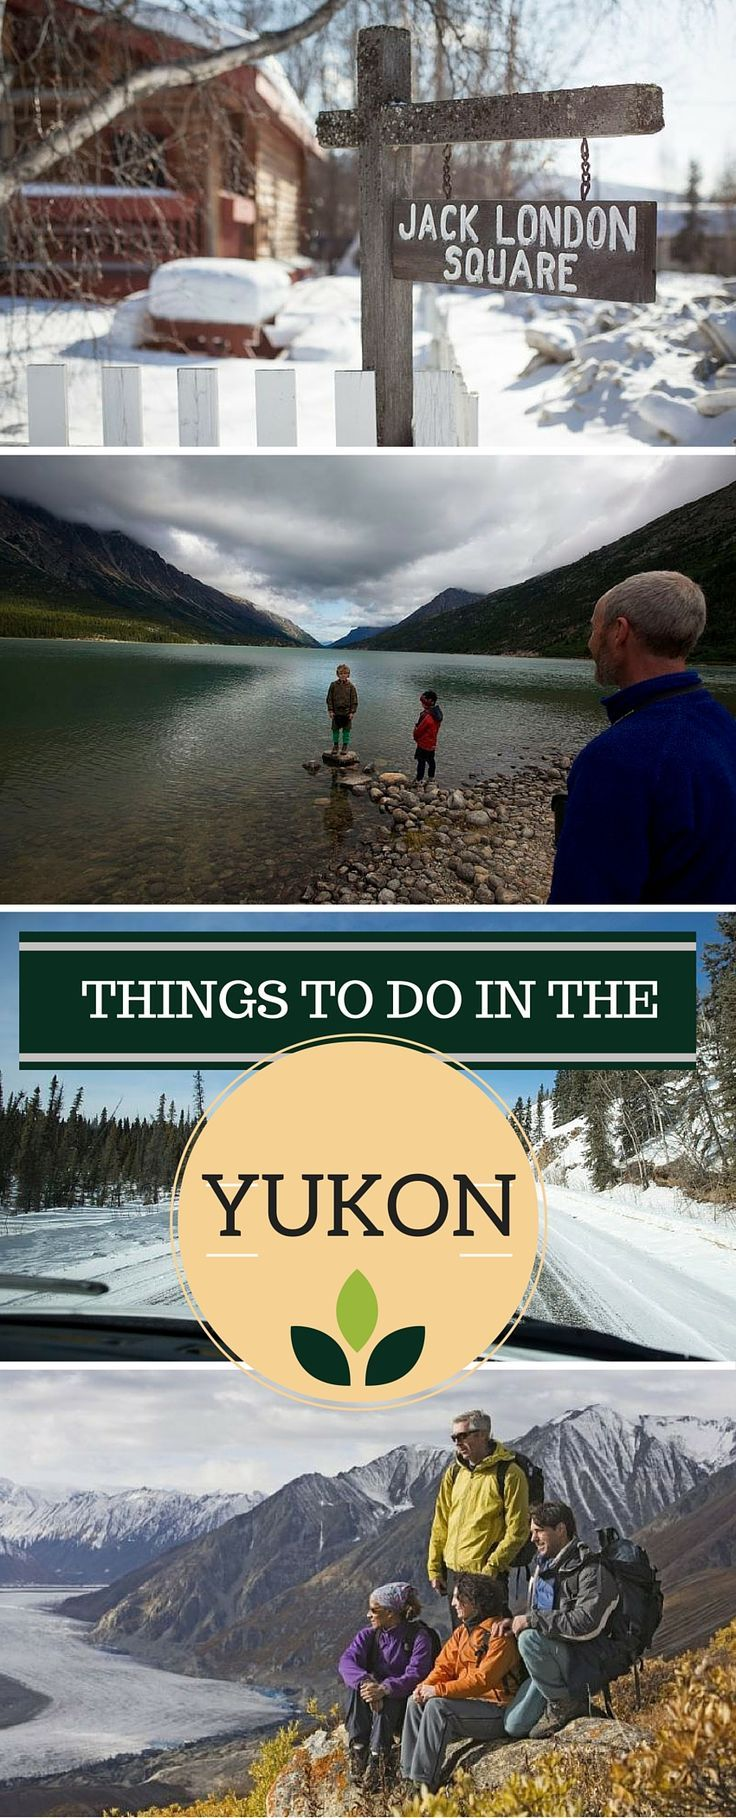 Located in northern Canada, the Yukon is a wedge of land surrounded by the Arctic Ocean, Alaska, the Northwest Territories and the province of British Columbia.